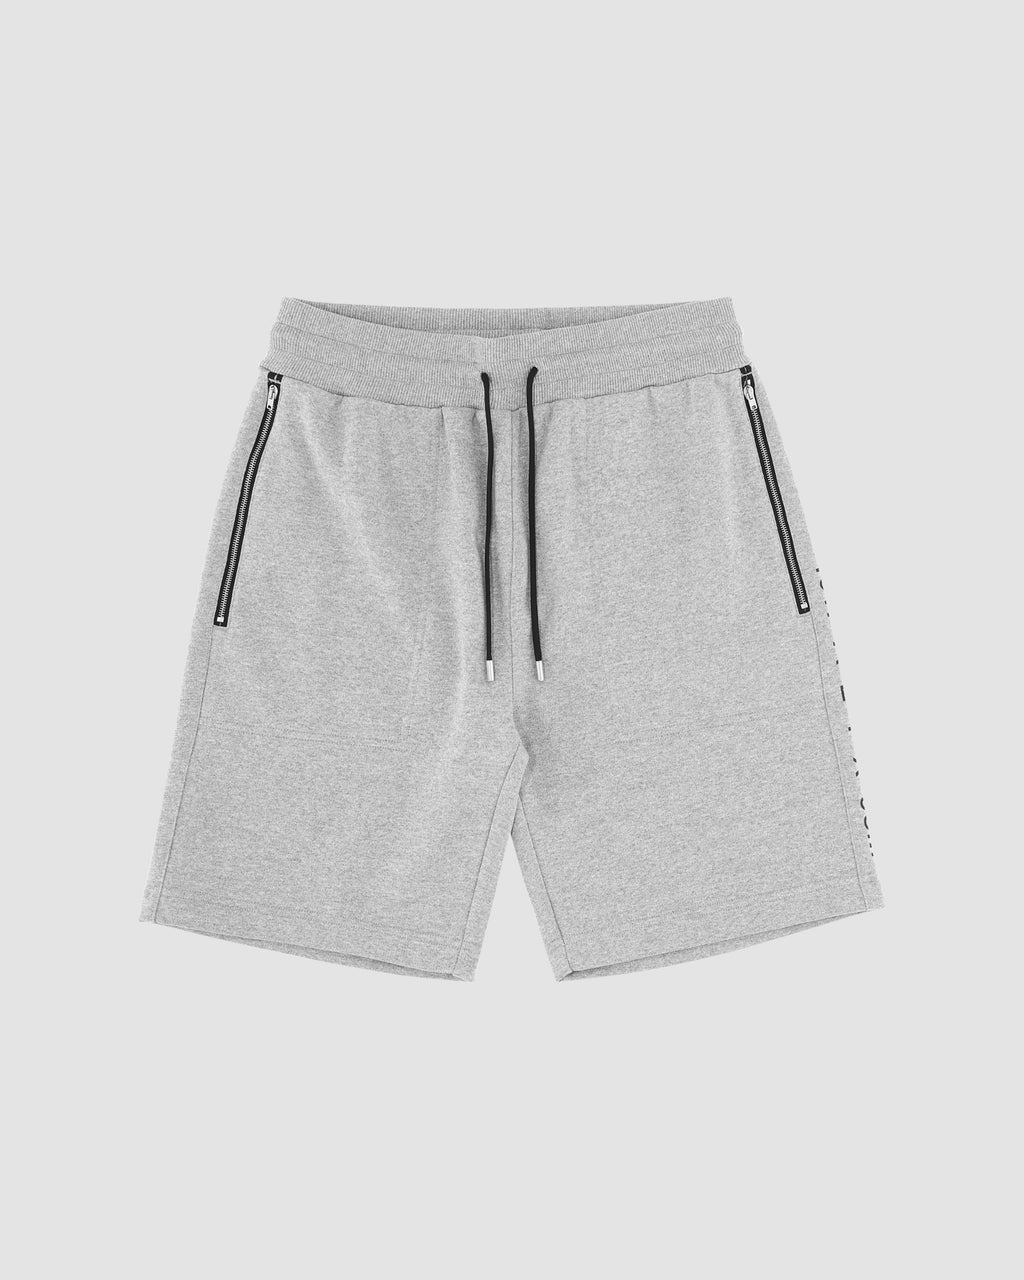 1017 ALYX 9SM | LOGO SWEAT SHORTS | Pants | F19, Grey, Visual